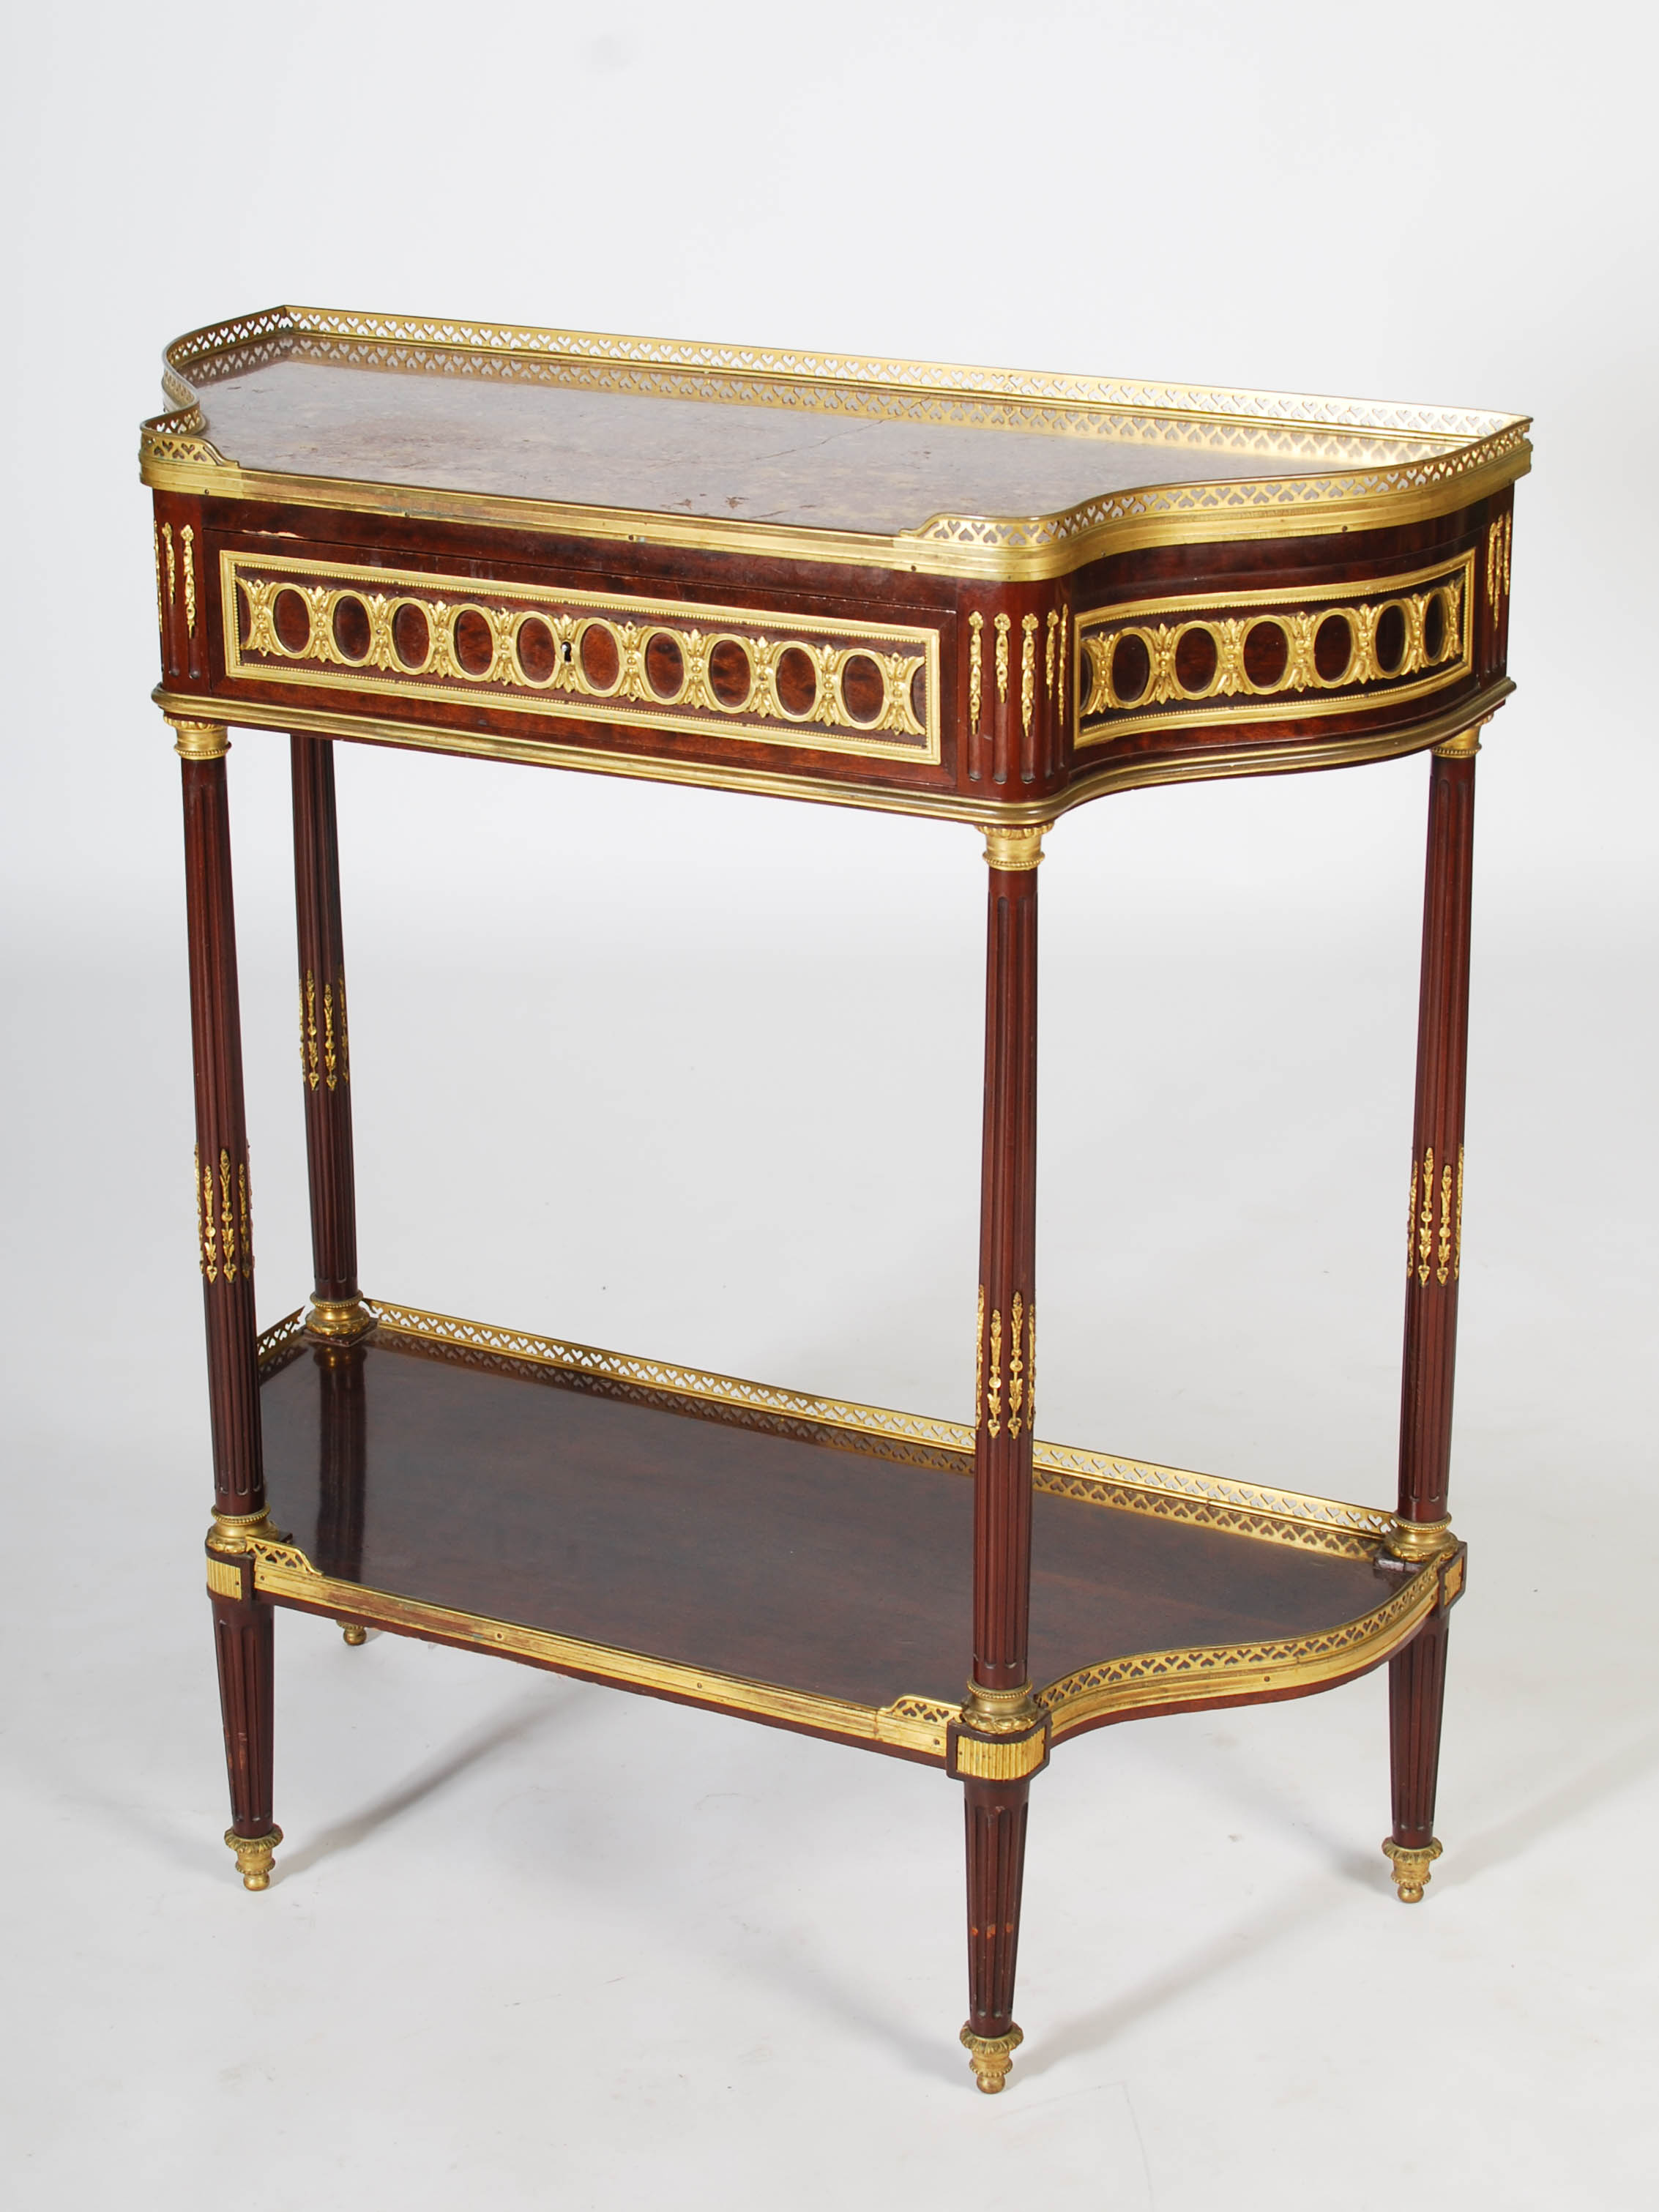 Lot 85 - A late 19th century French mahogany and gilt metal mounted Louis XVI style console table, the